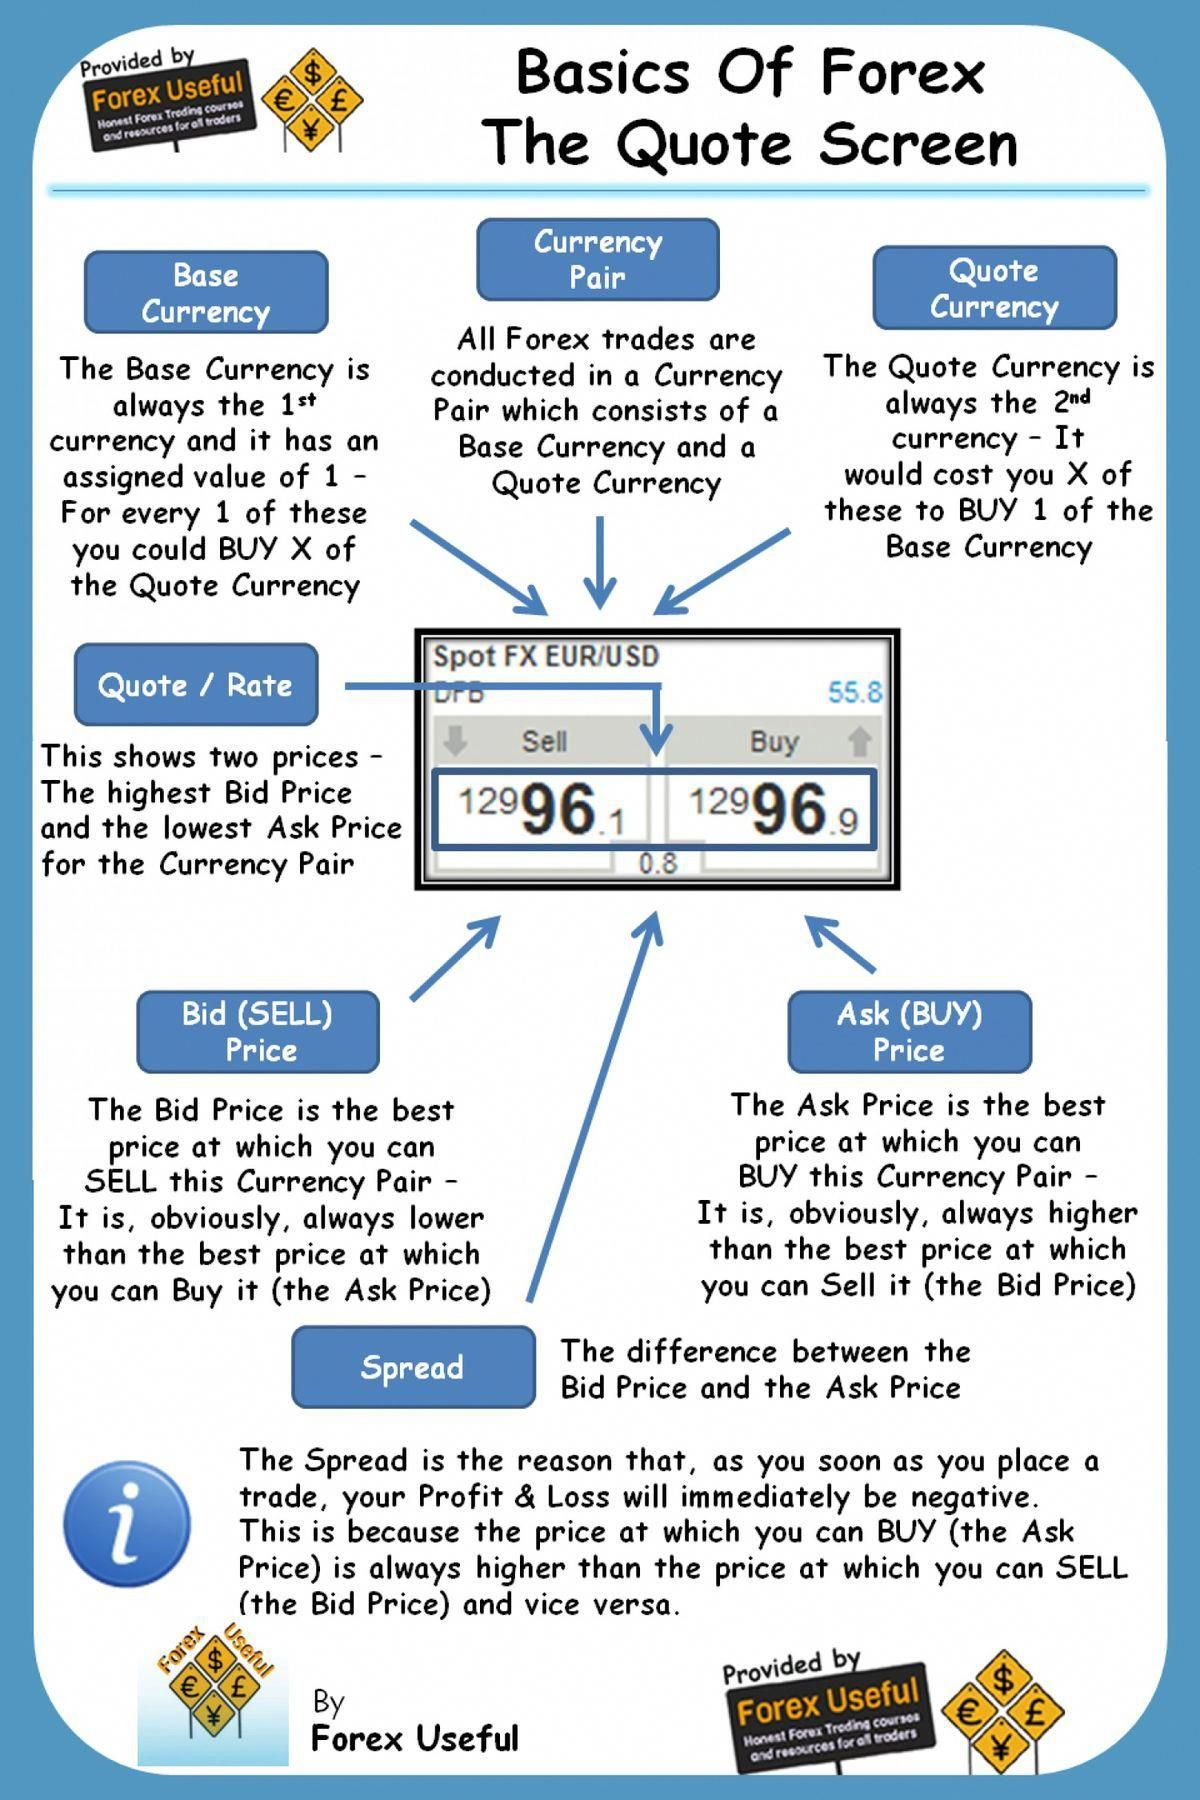 Basics Of Forex The Quote Screen Infographic Www 100mcxtips Com